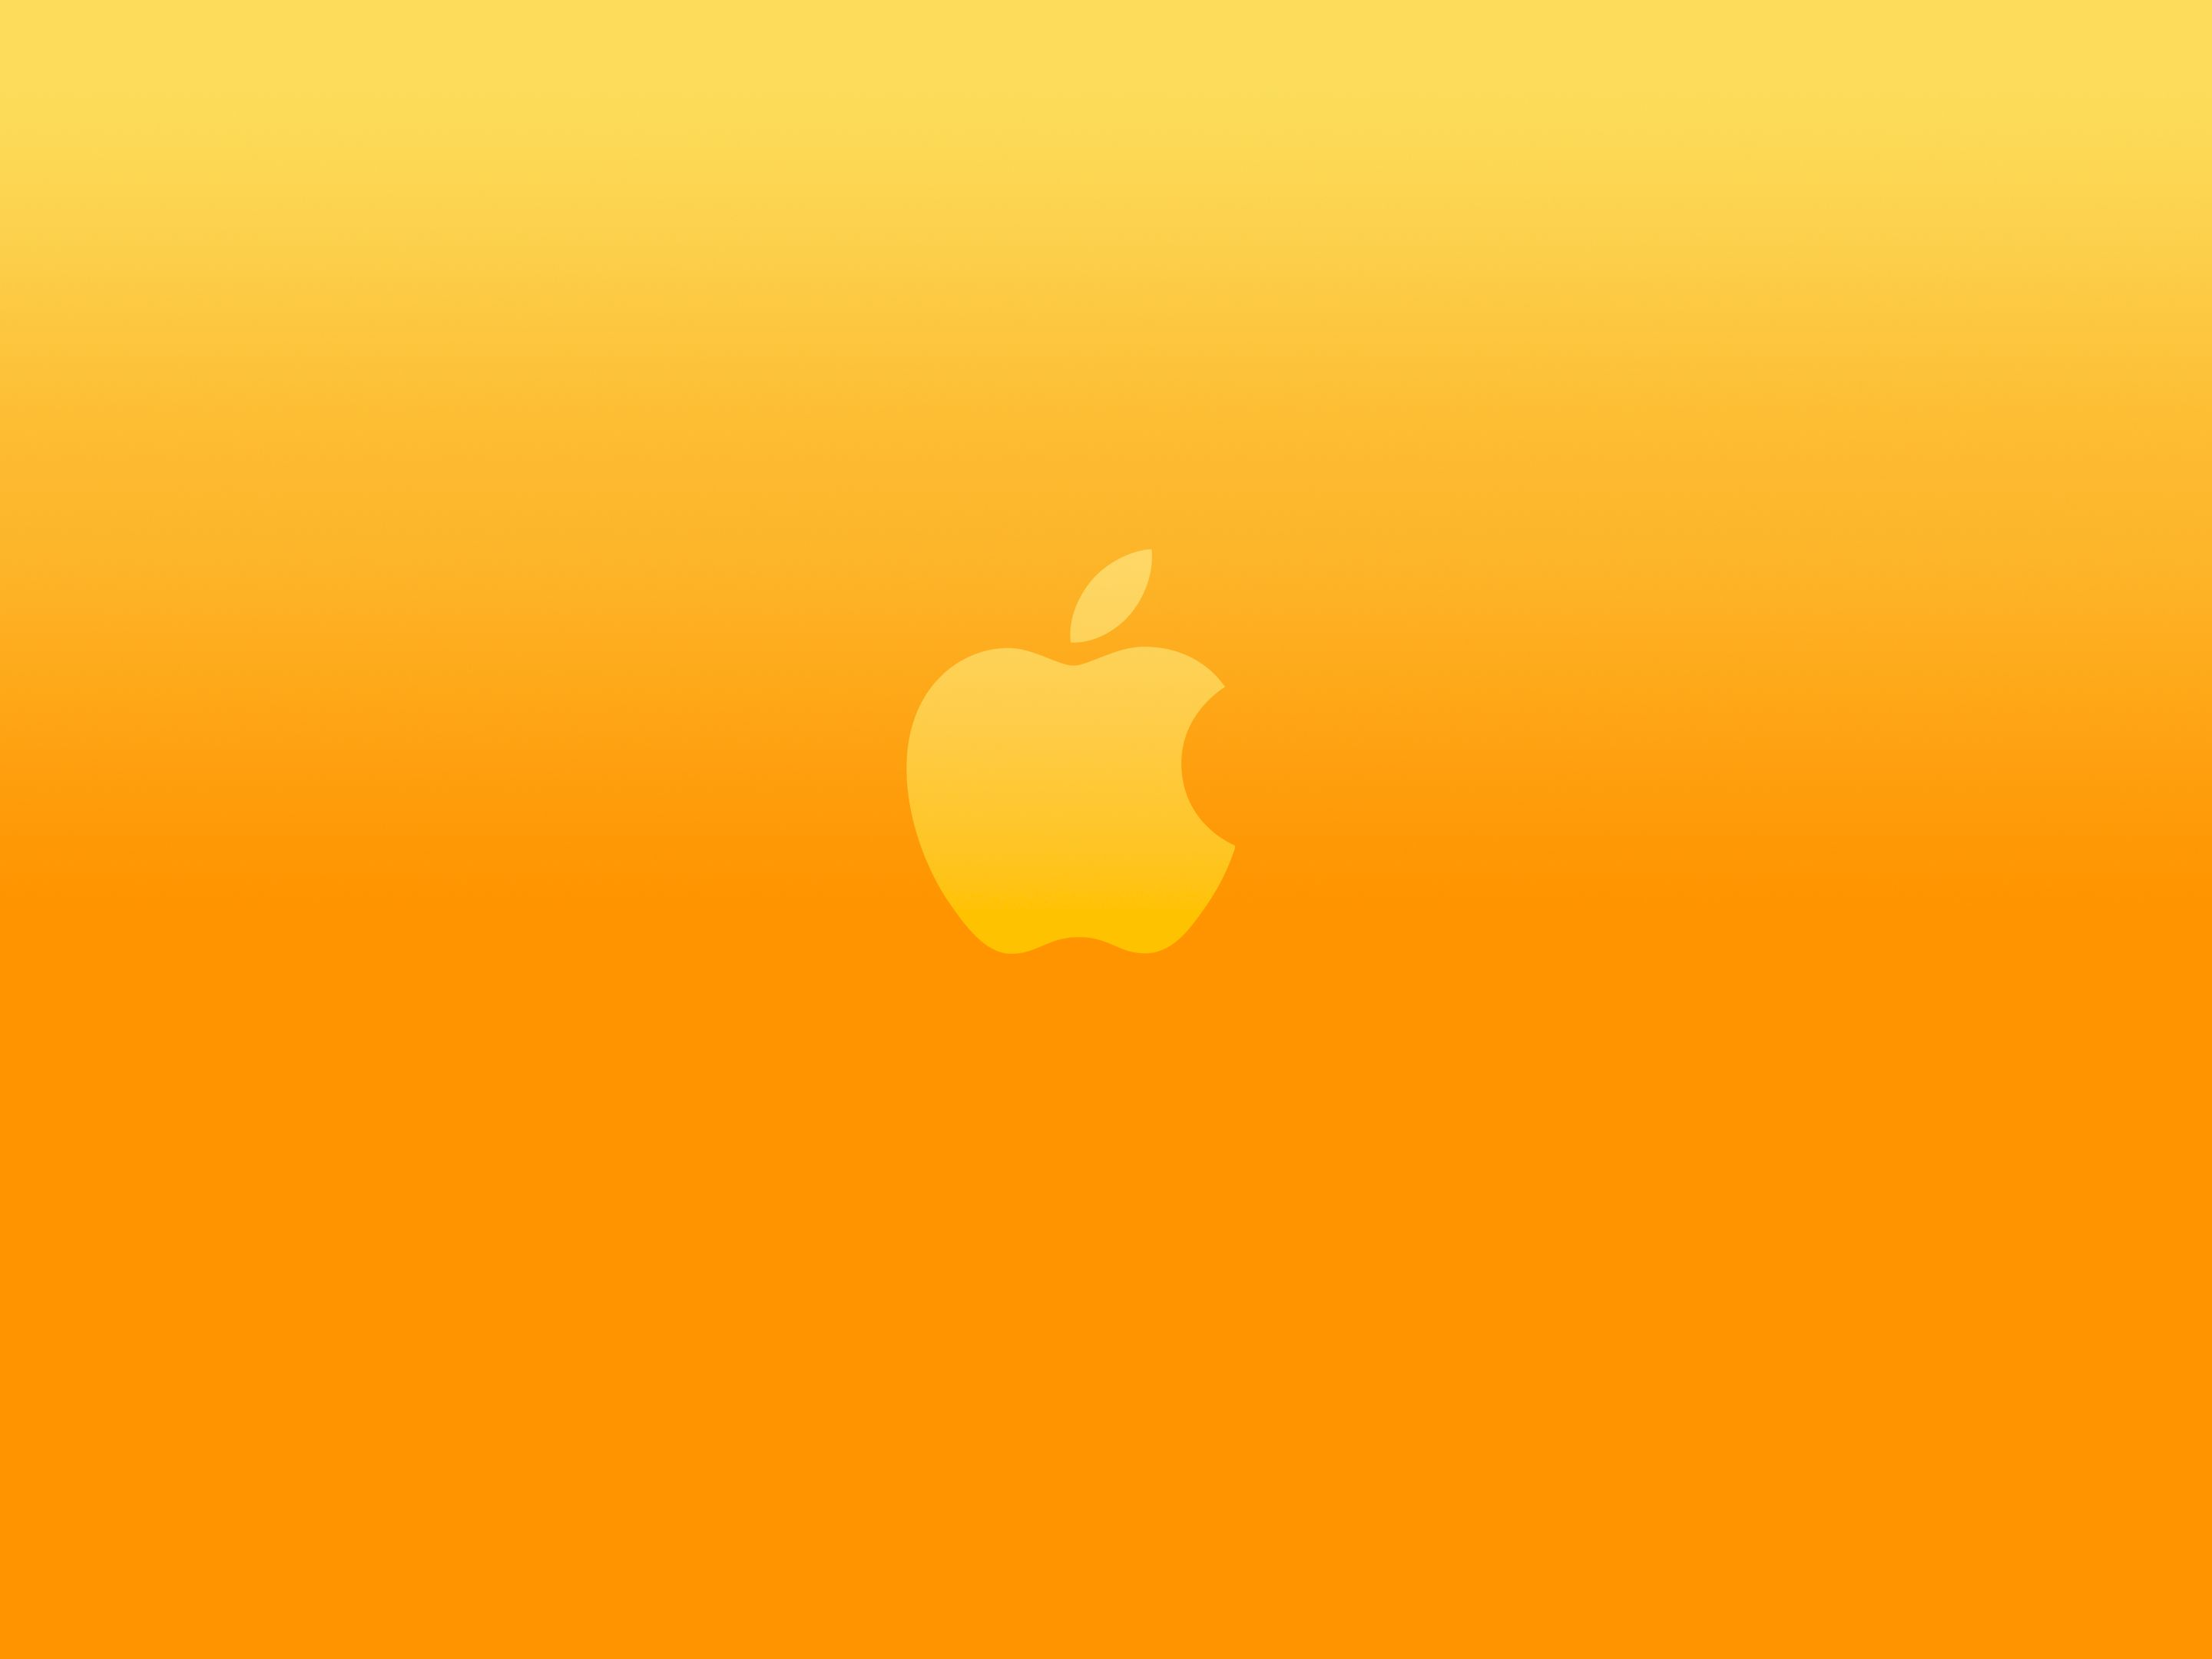 Gold Apple Logo Wallpapers - Top Free Gold Apple Logo Backgrounds